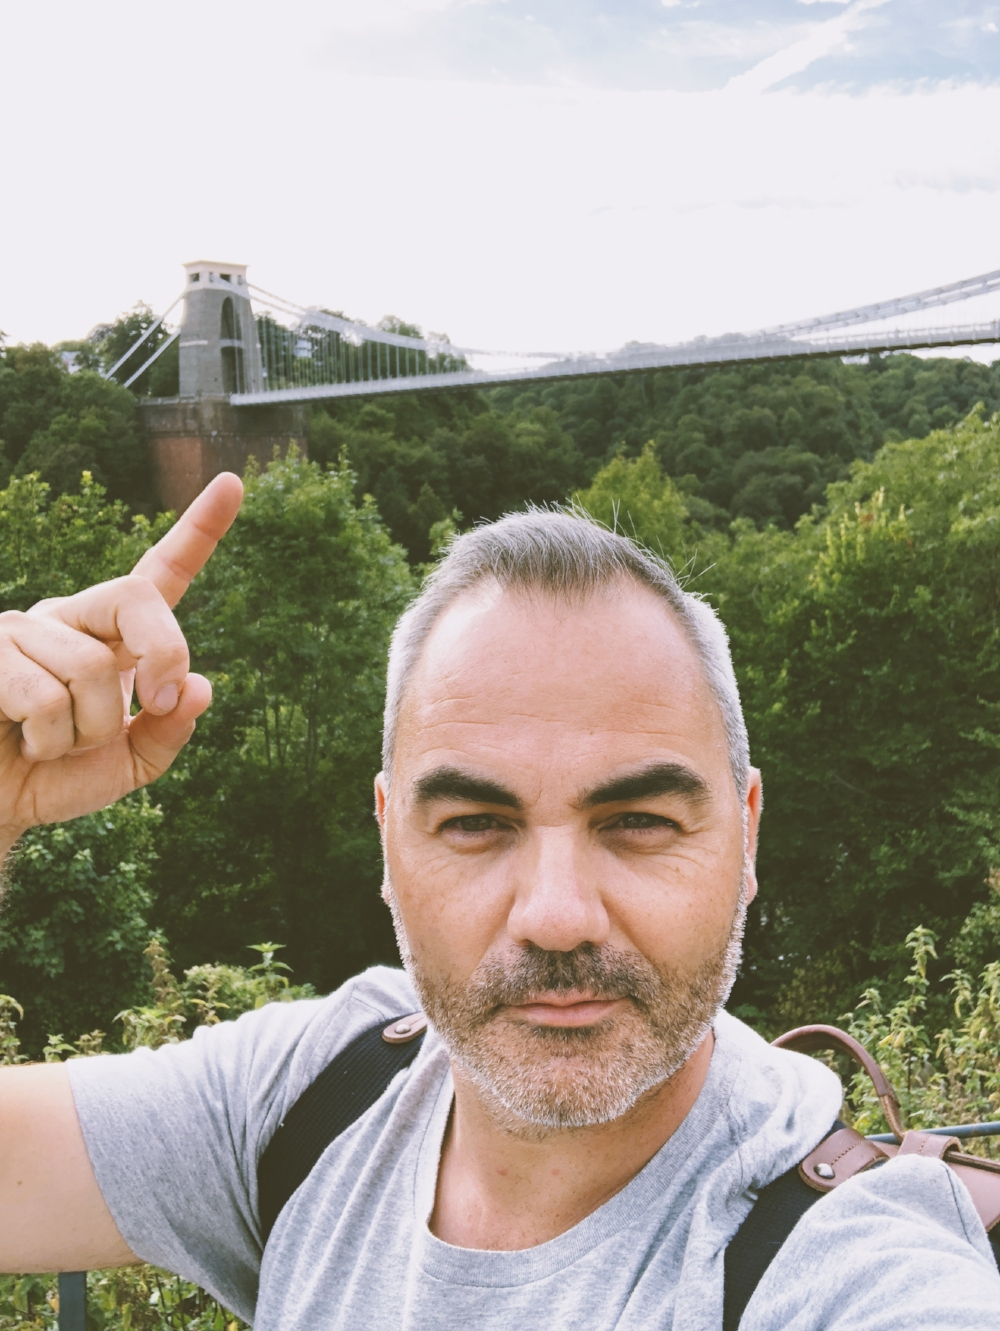 View to the Suspension Bridge. iPhone 8 Plus Front Camera. Wait a minute! Who's that handsome guy!